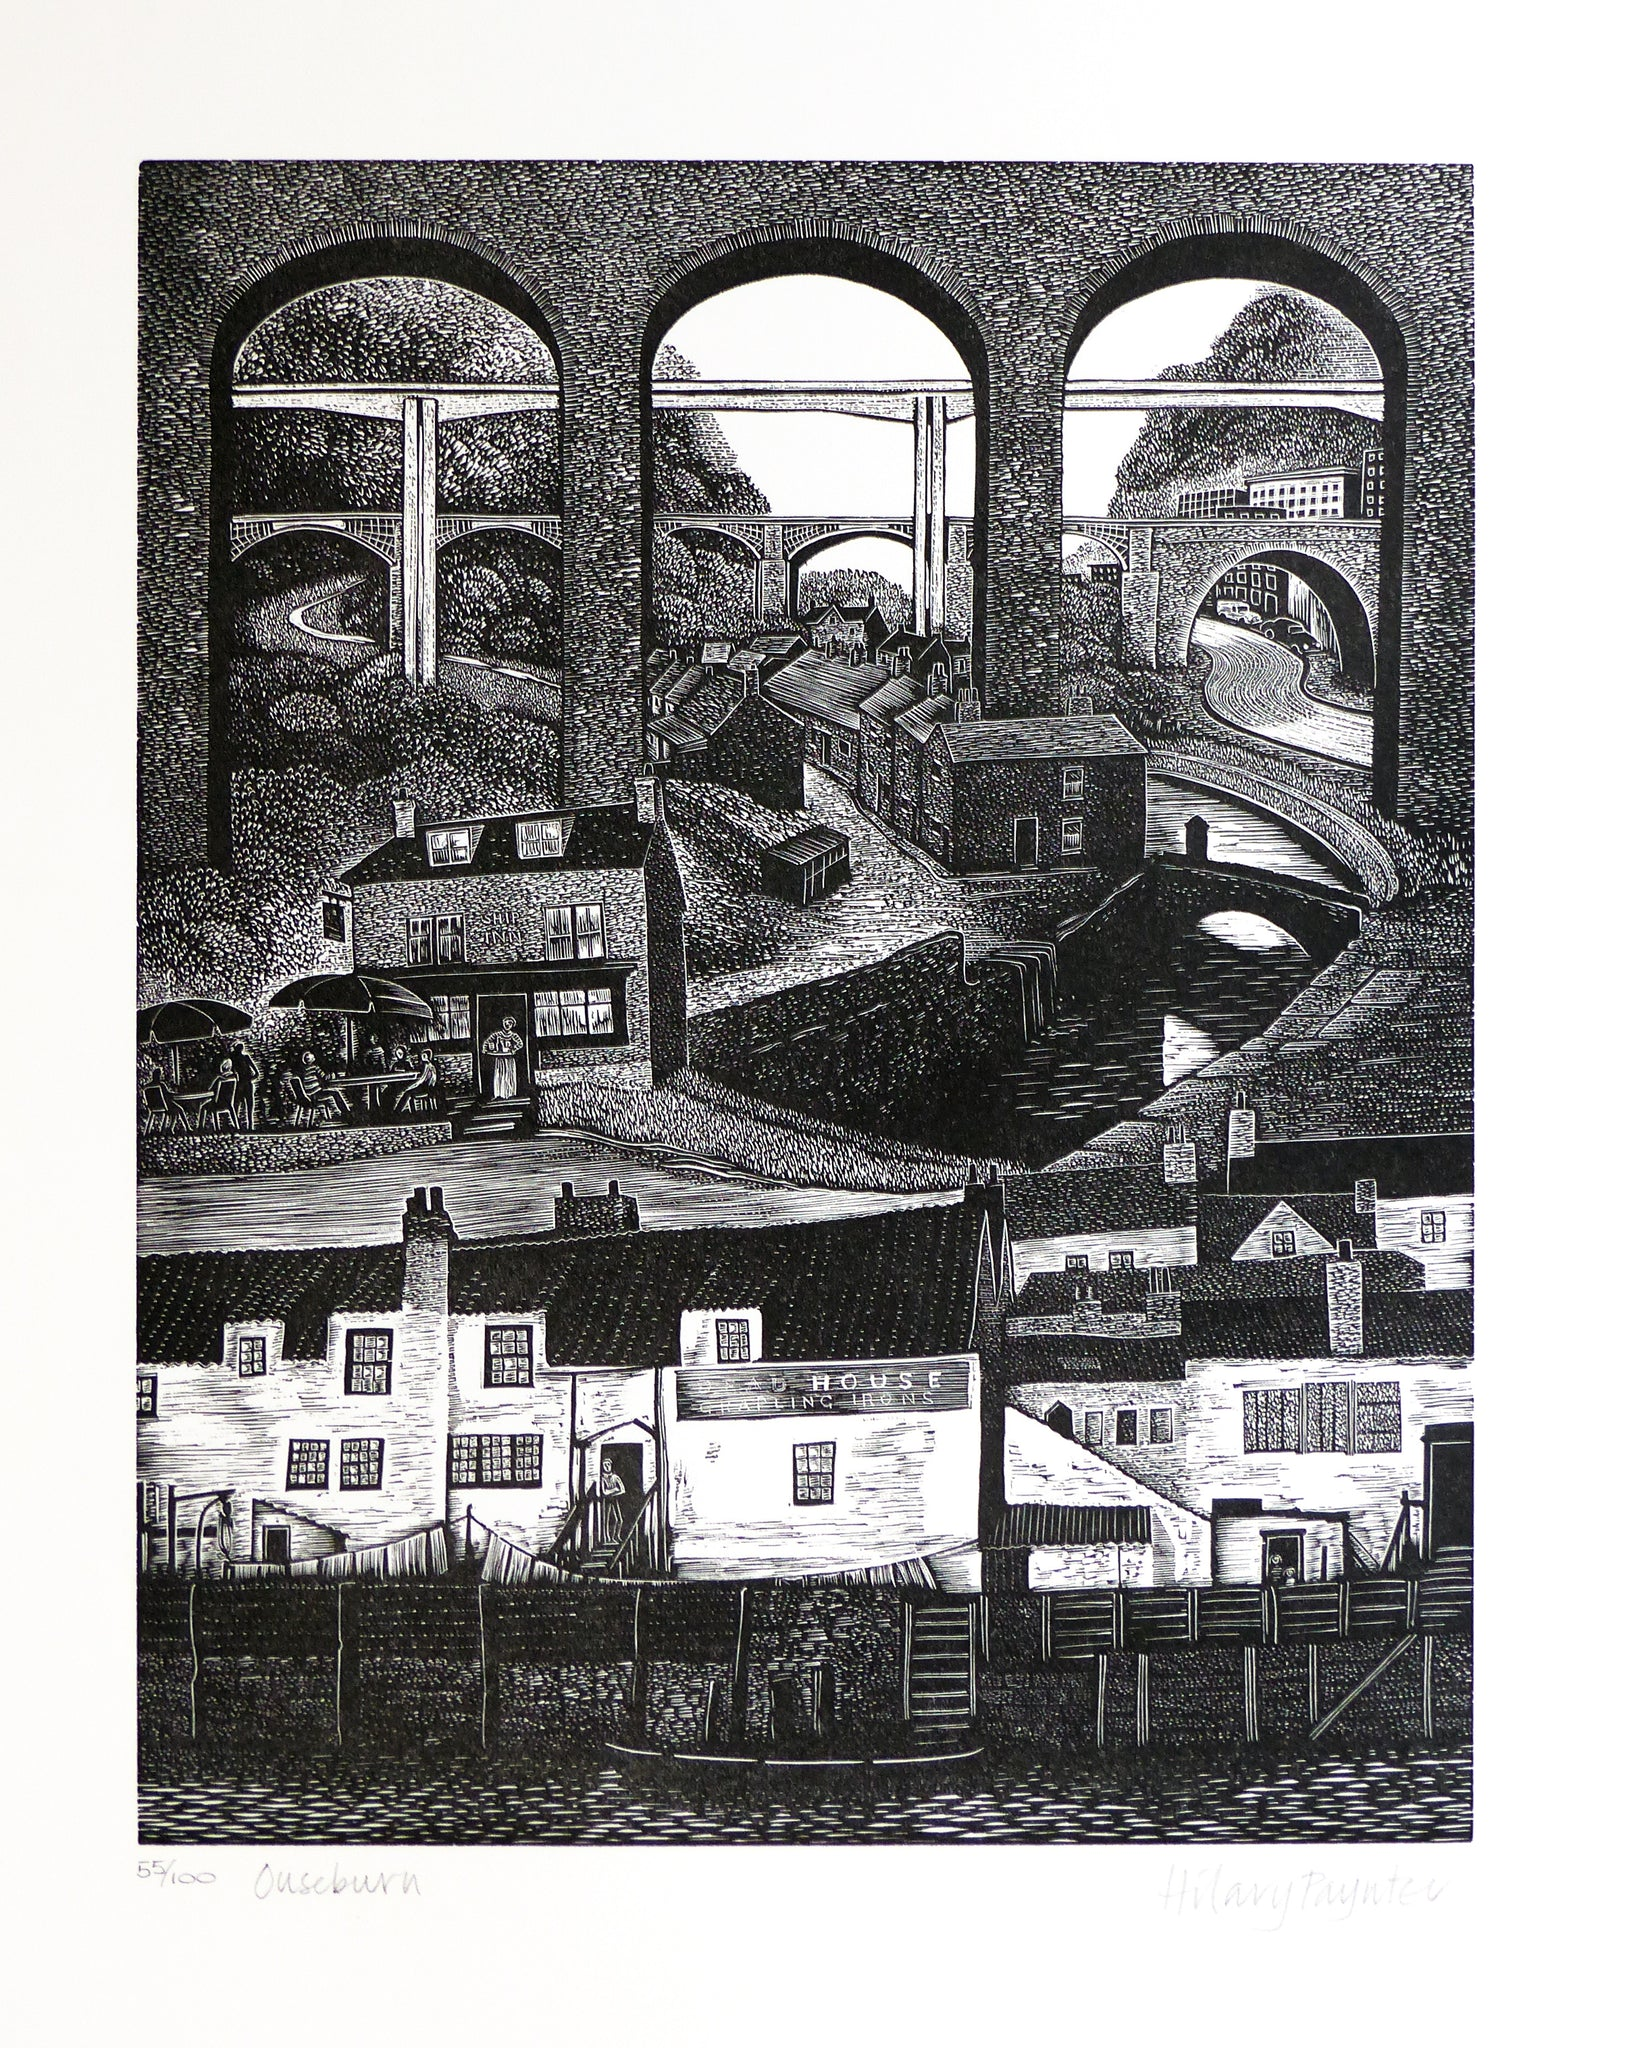 Hilary Paynter Wood Engraving: Ouseburn